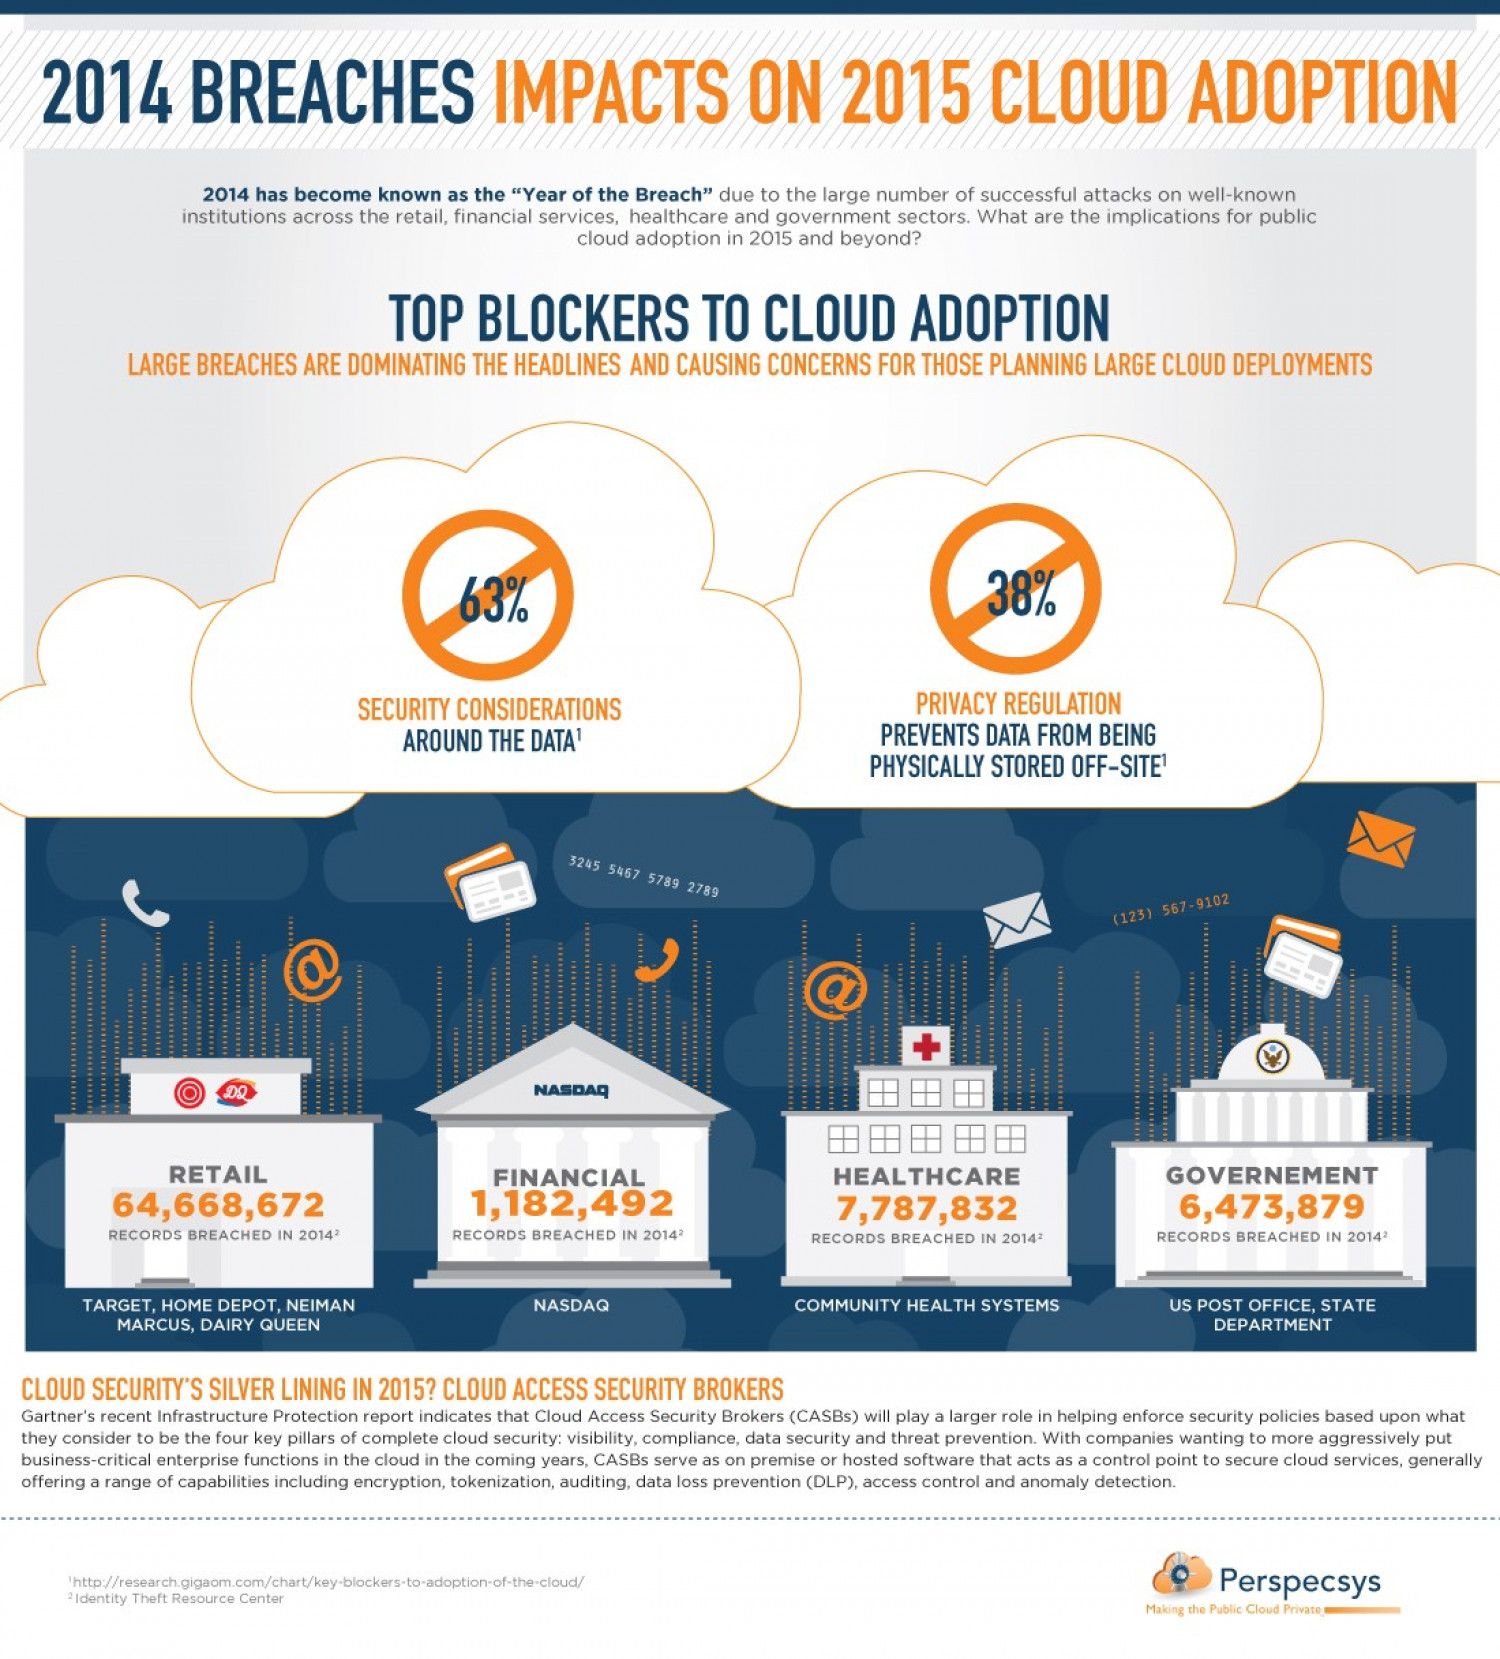 2014 Data Breaches: Impacts on 2015 Cloud Adoption Infographic